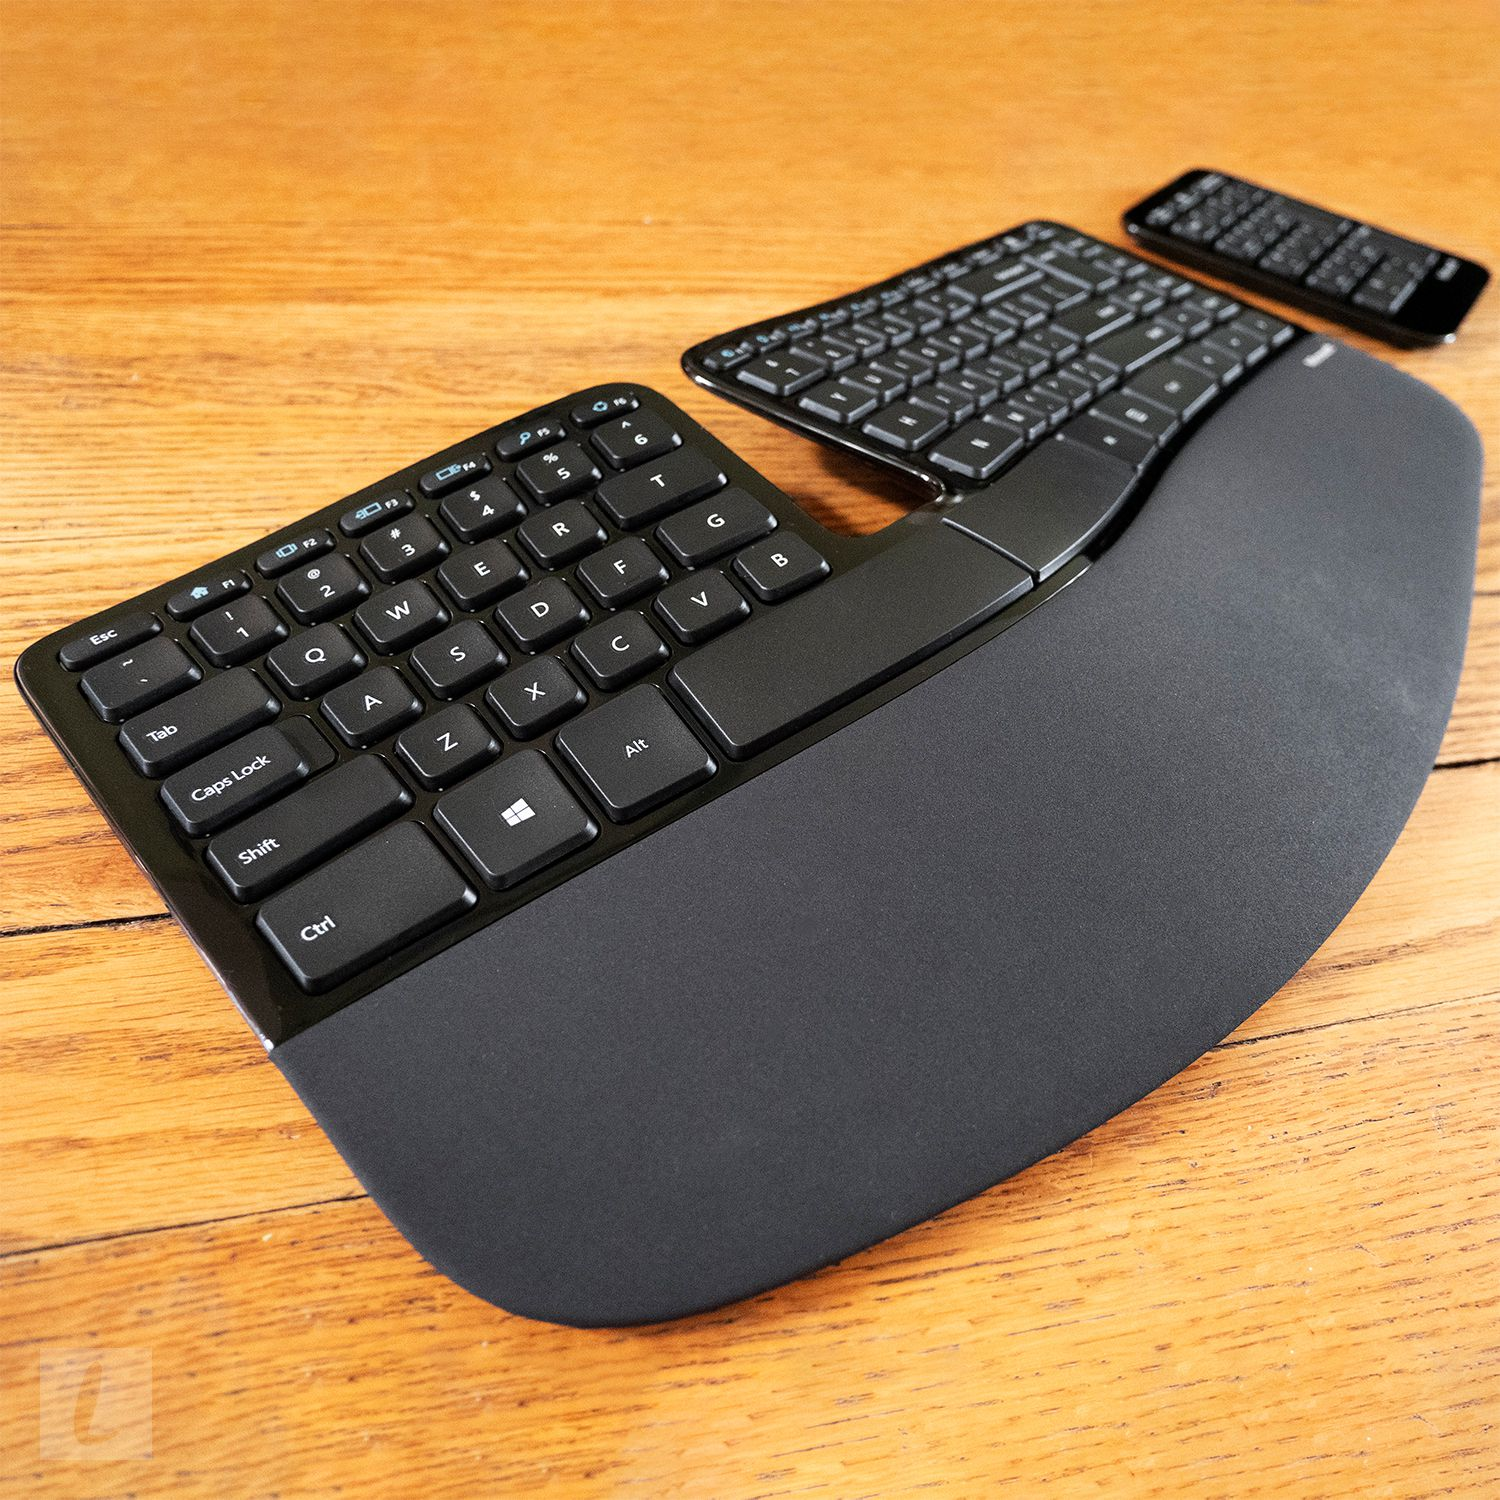 Microsoft Sculpt Ergonomic Keyboard Review A Great Value